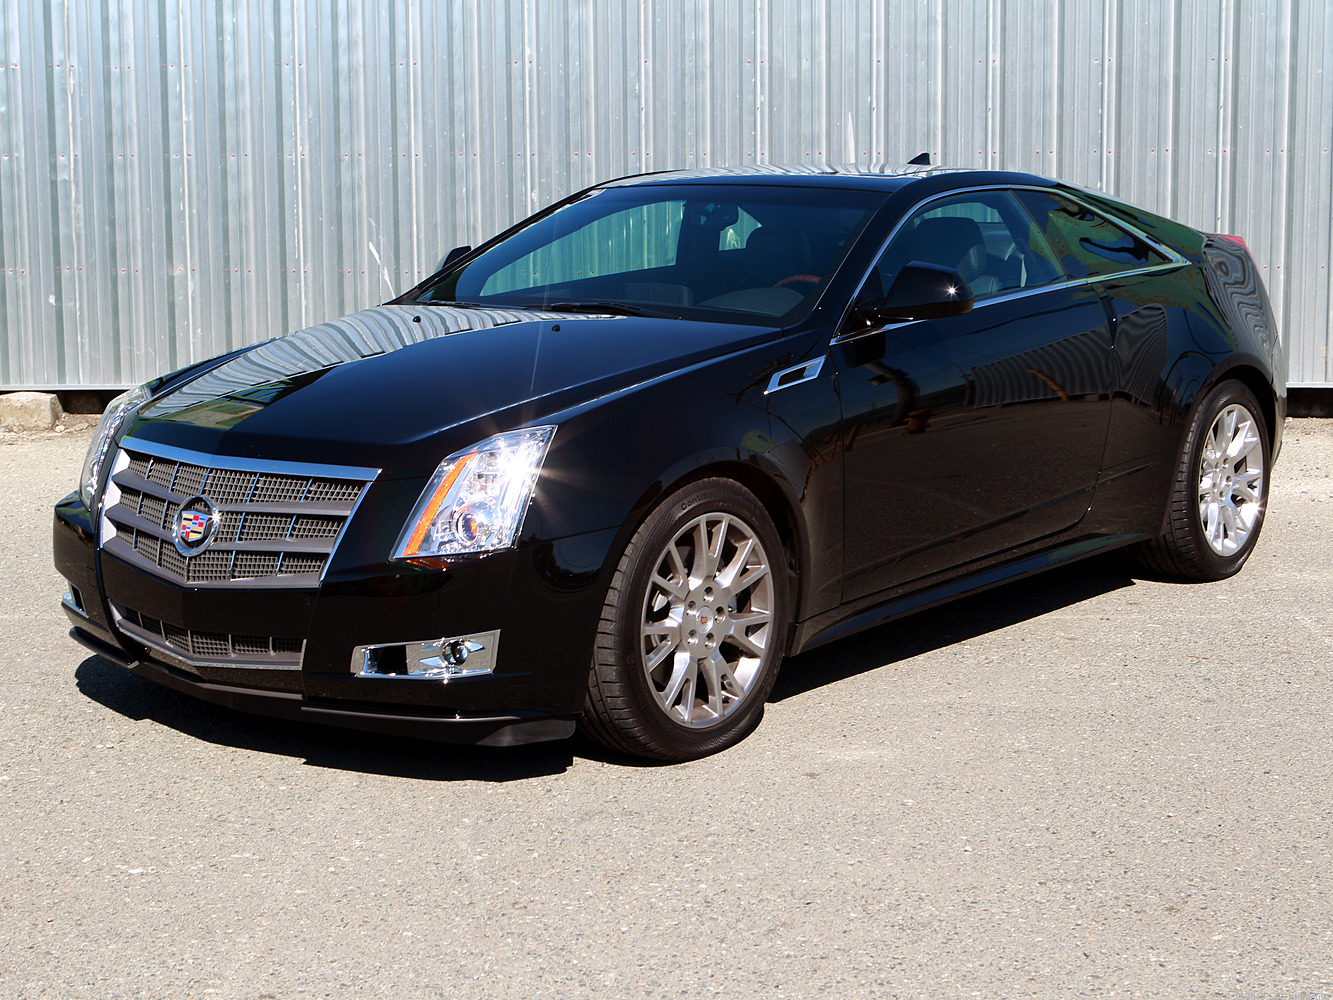 2010 Cadillac CTS Coupe photo - 2